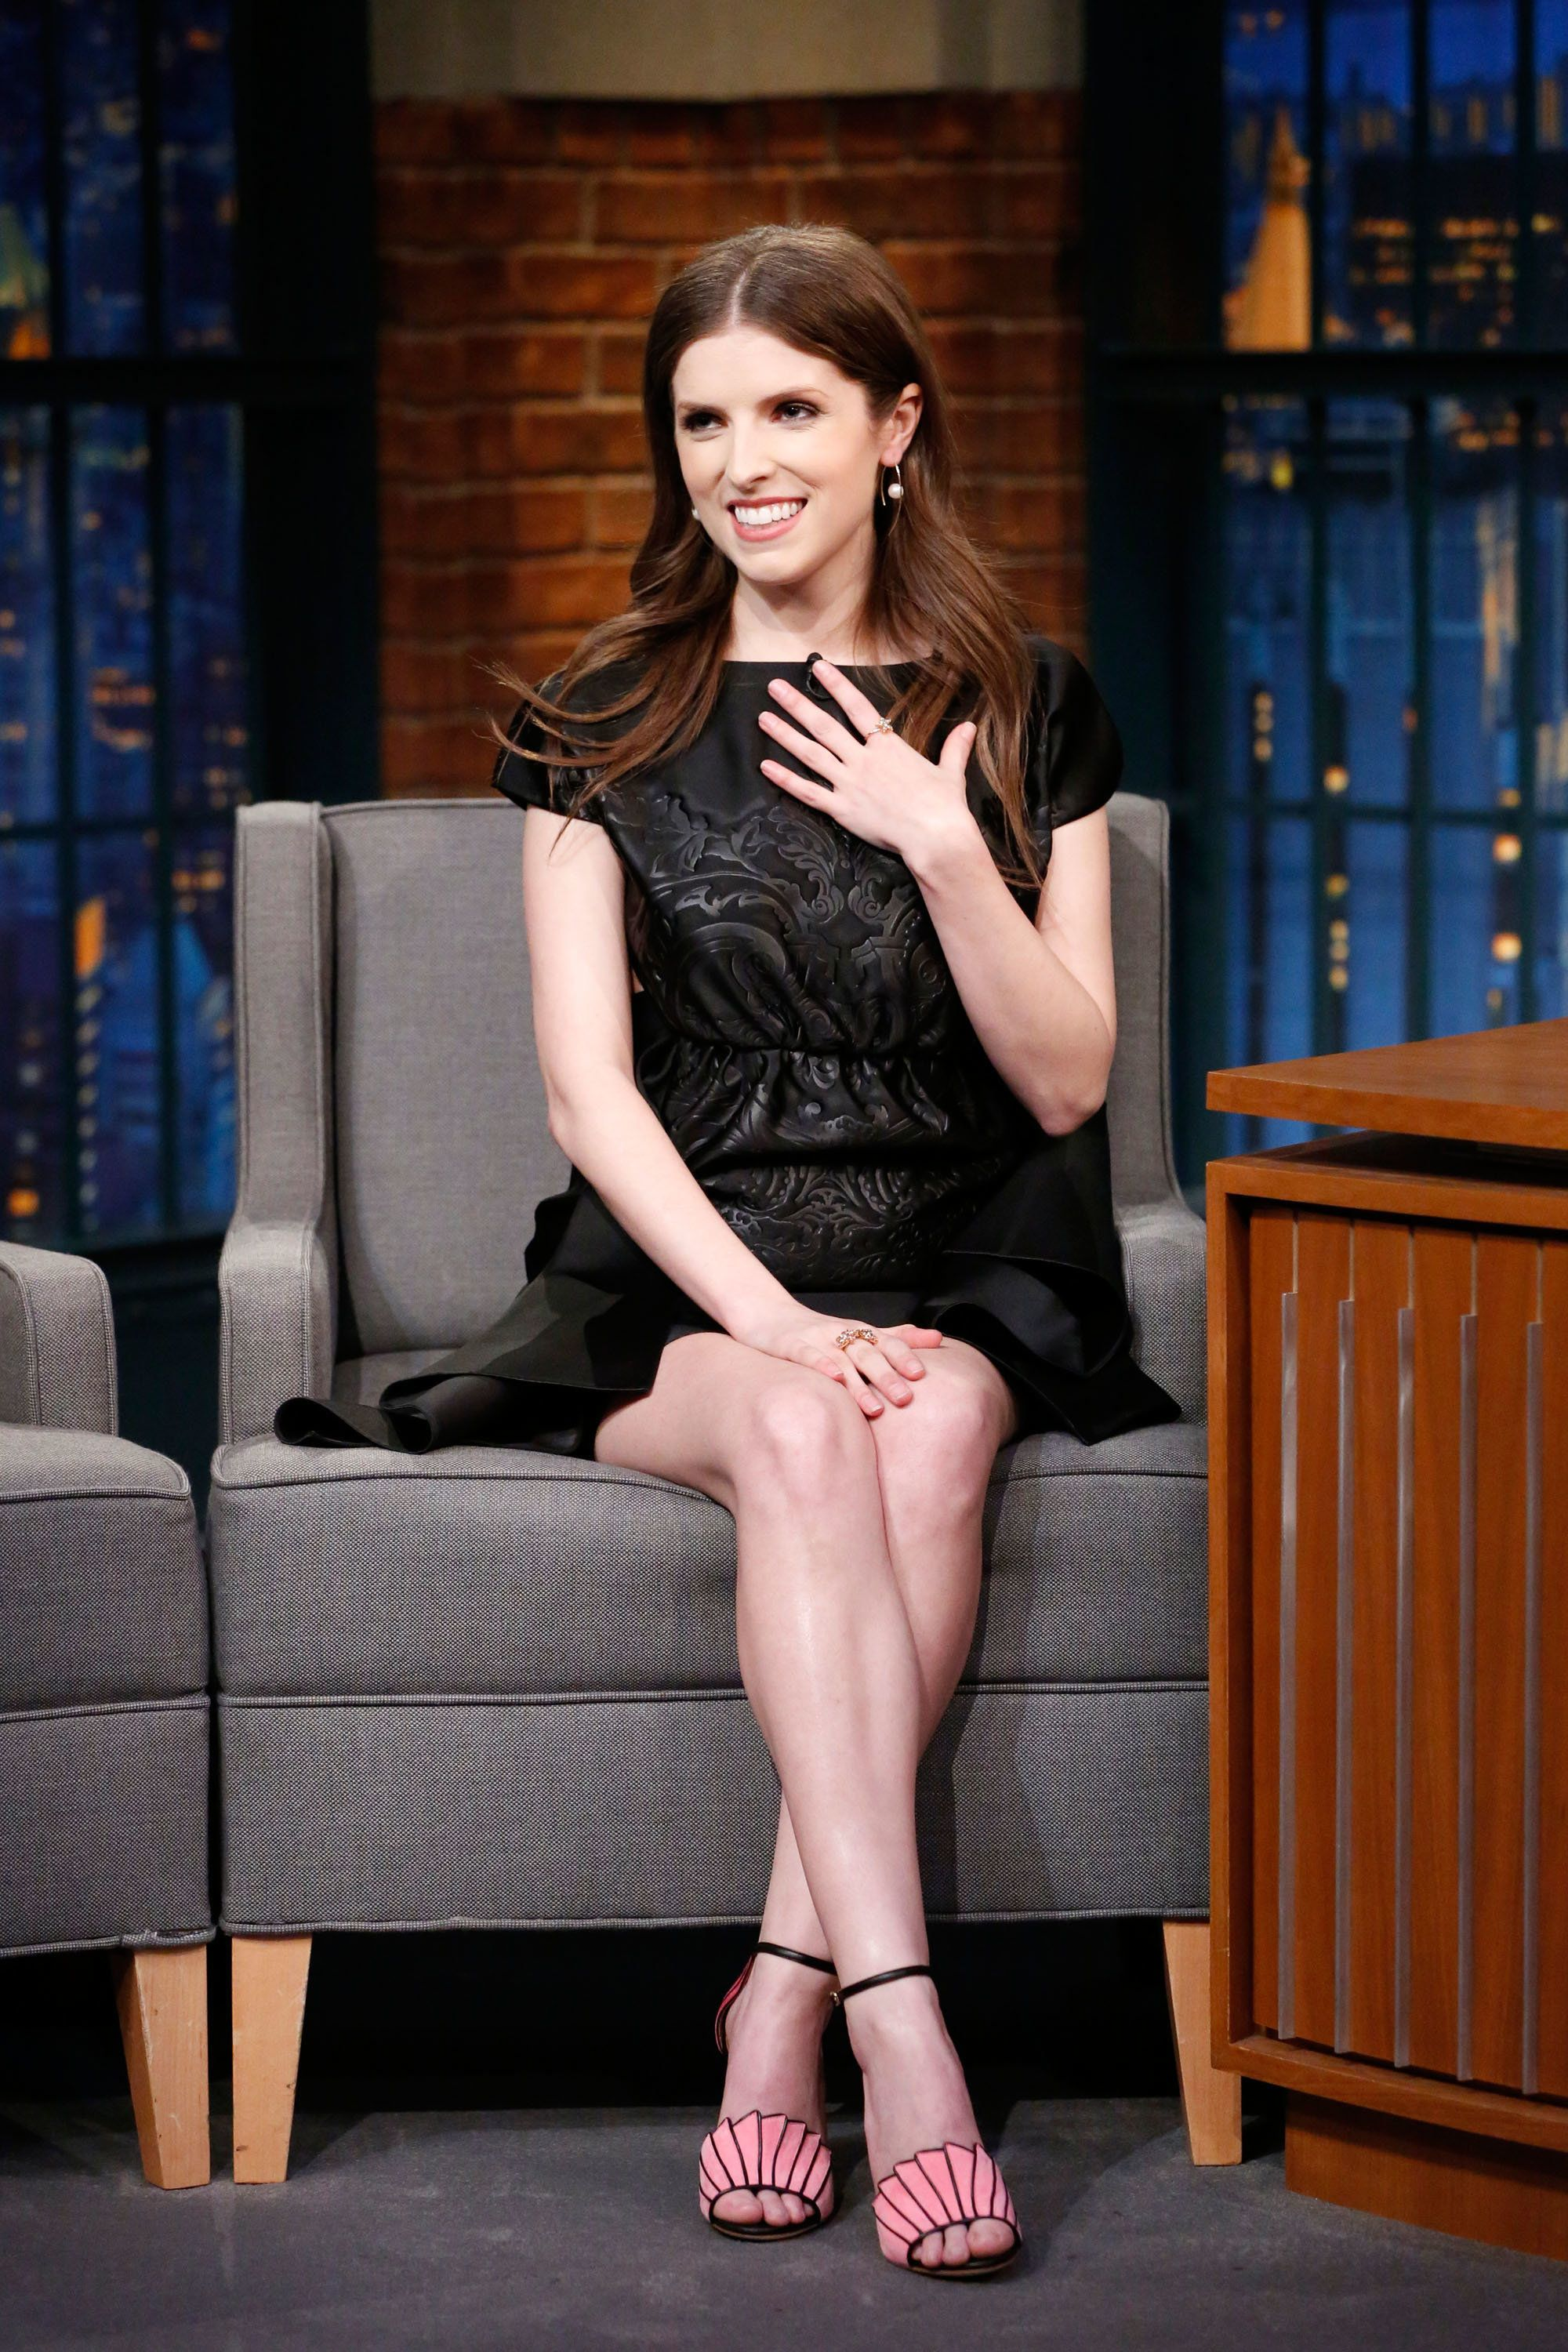 LATE NIGHT WITH SETH MEYERS -- Episode 492 -- Pictured: Actress Anna Kendrick during an interview on February 20, 2017 -- (Photo by: Lloyd Bishop/NBC/NBCU Photo Bank via Getty Images)